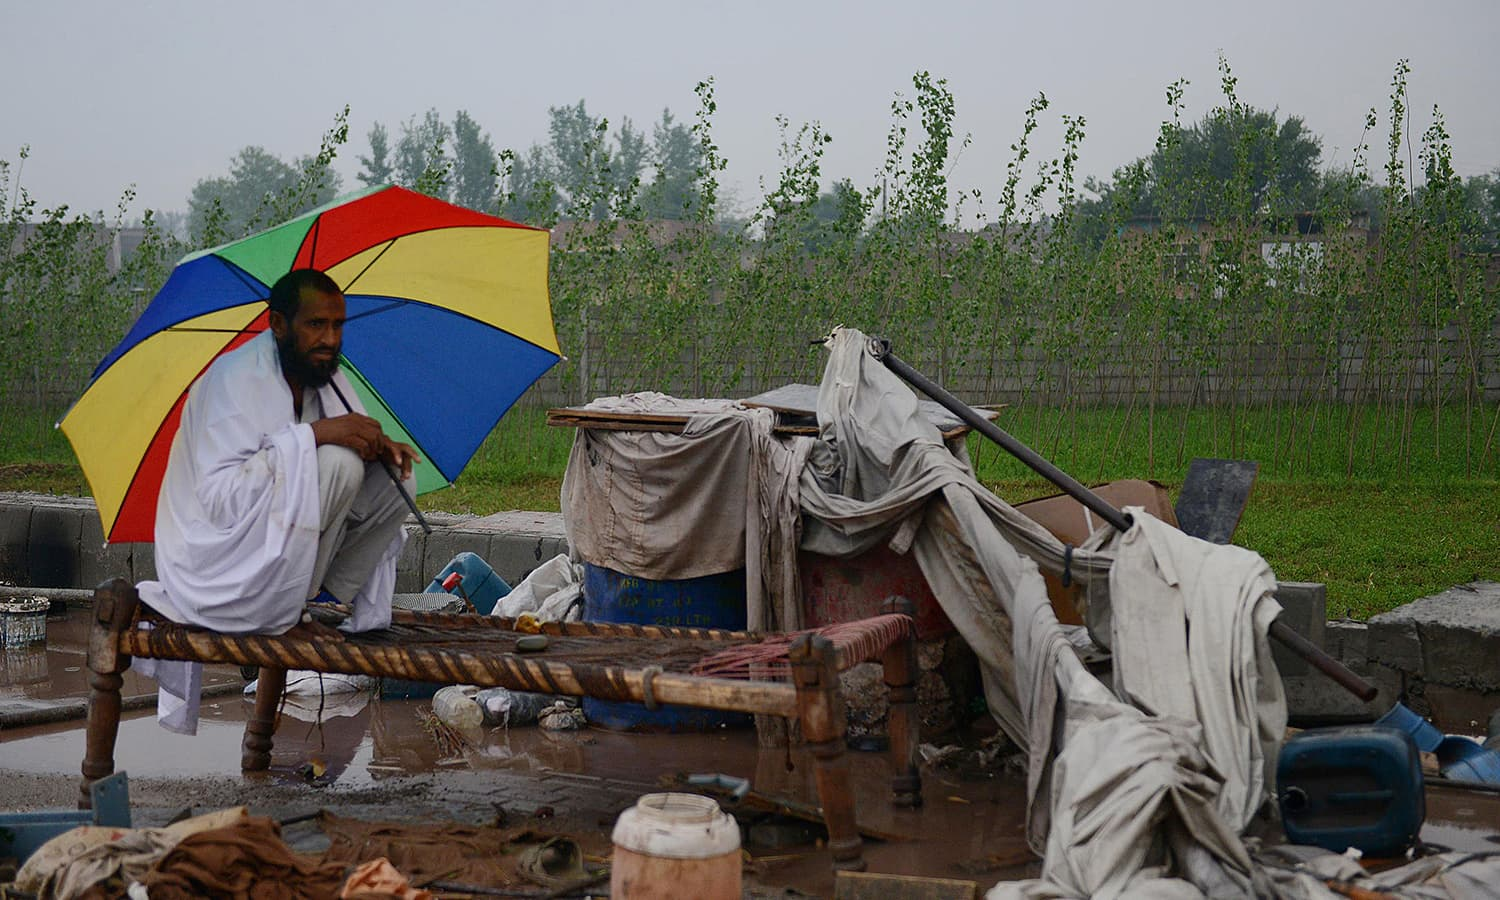 A resident sits alongside with his belongings following heavy rain and winds in Peshawar. — AFP